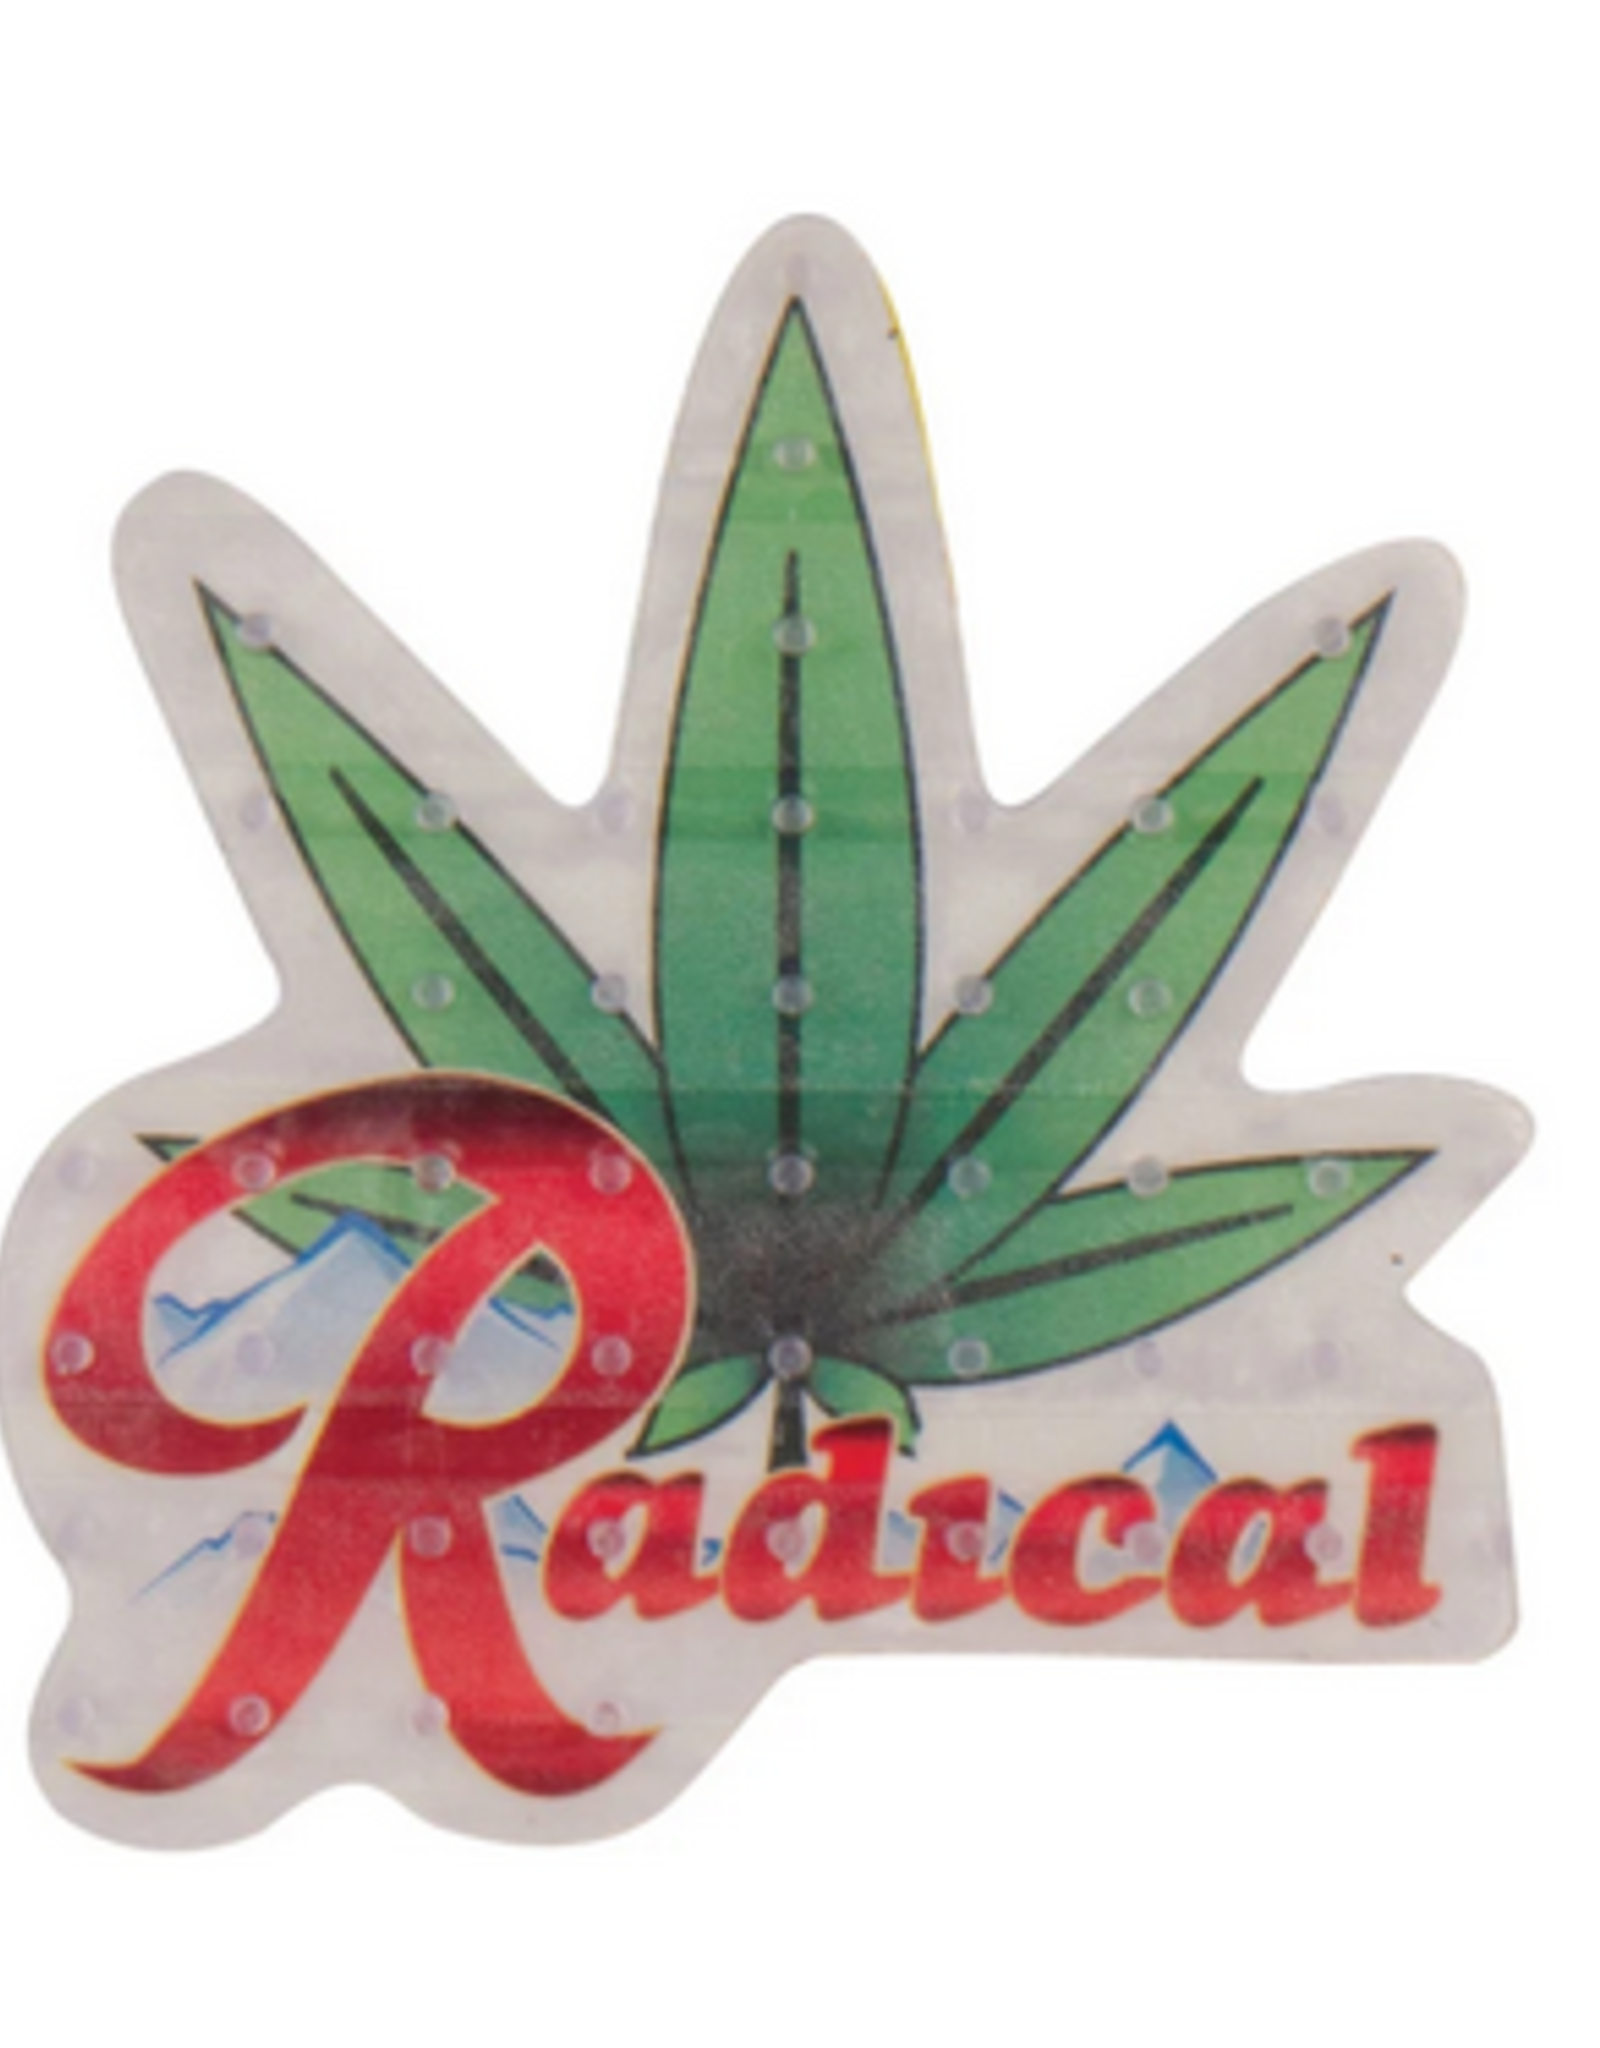 ONE BALL JAY ONE BALL JAY RADICAL 420 WEED TRACTION STOMP PAD